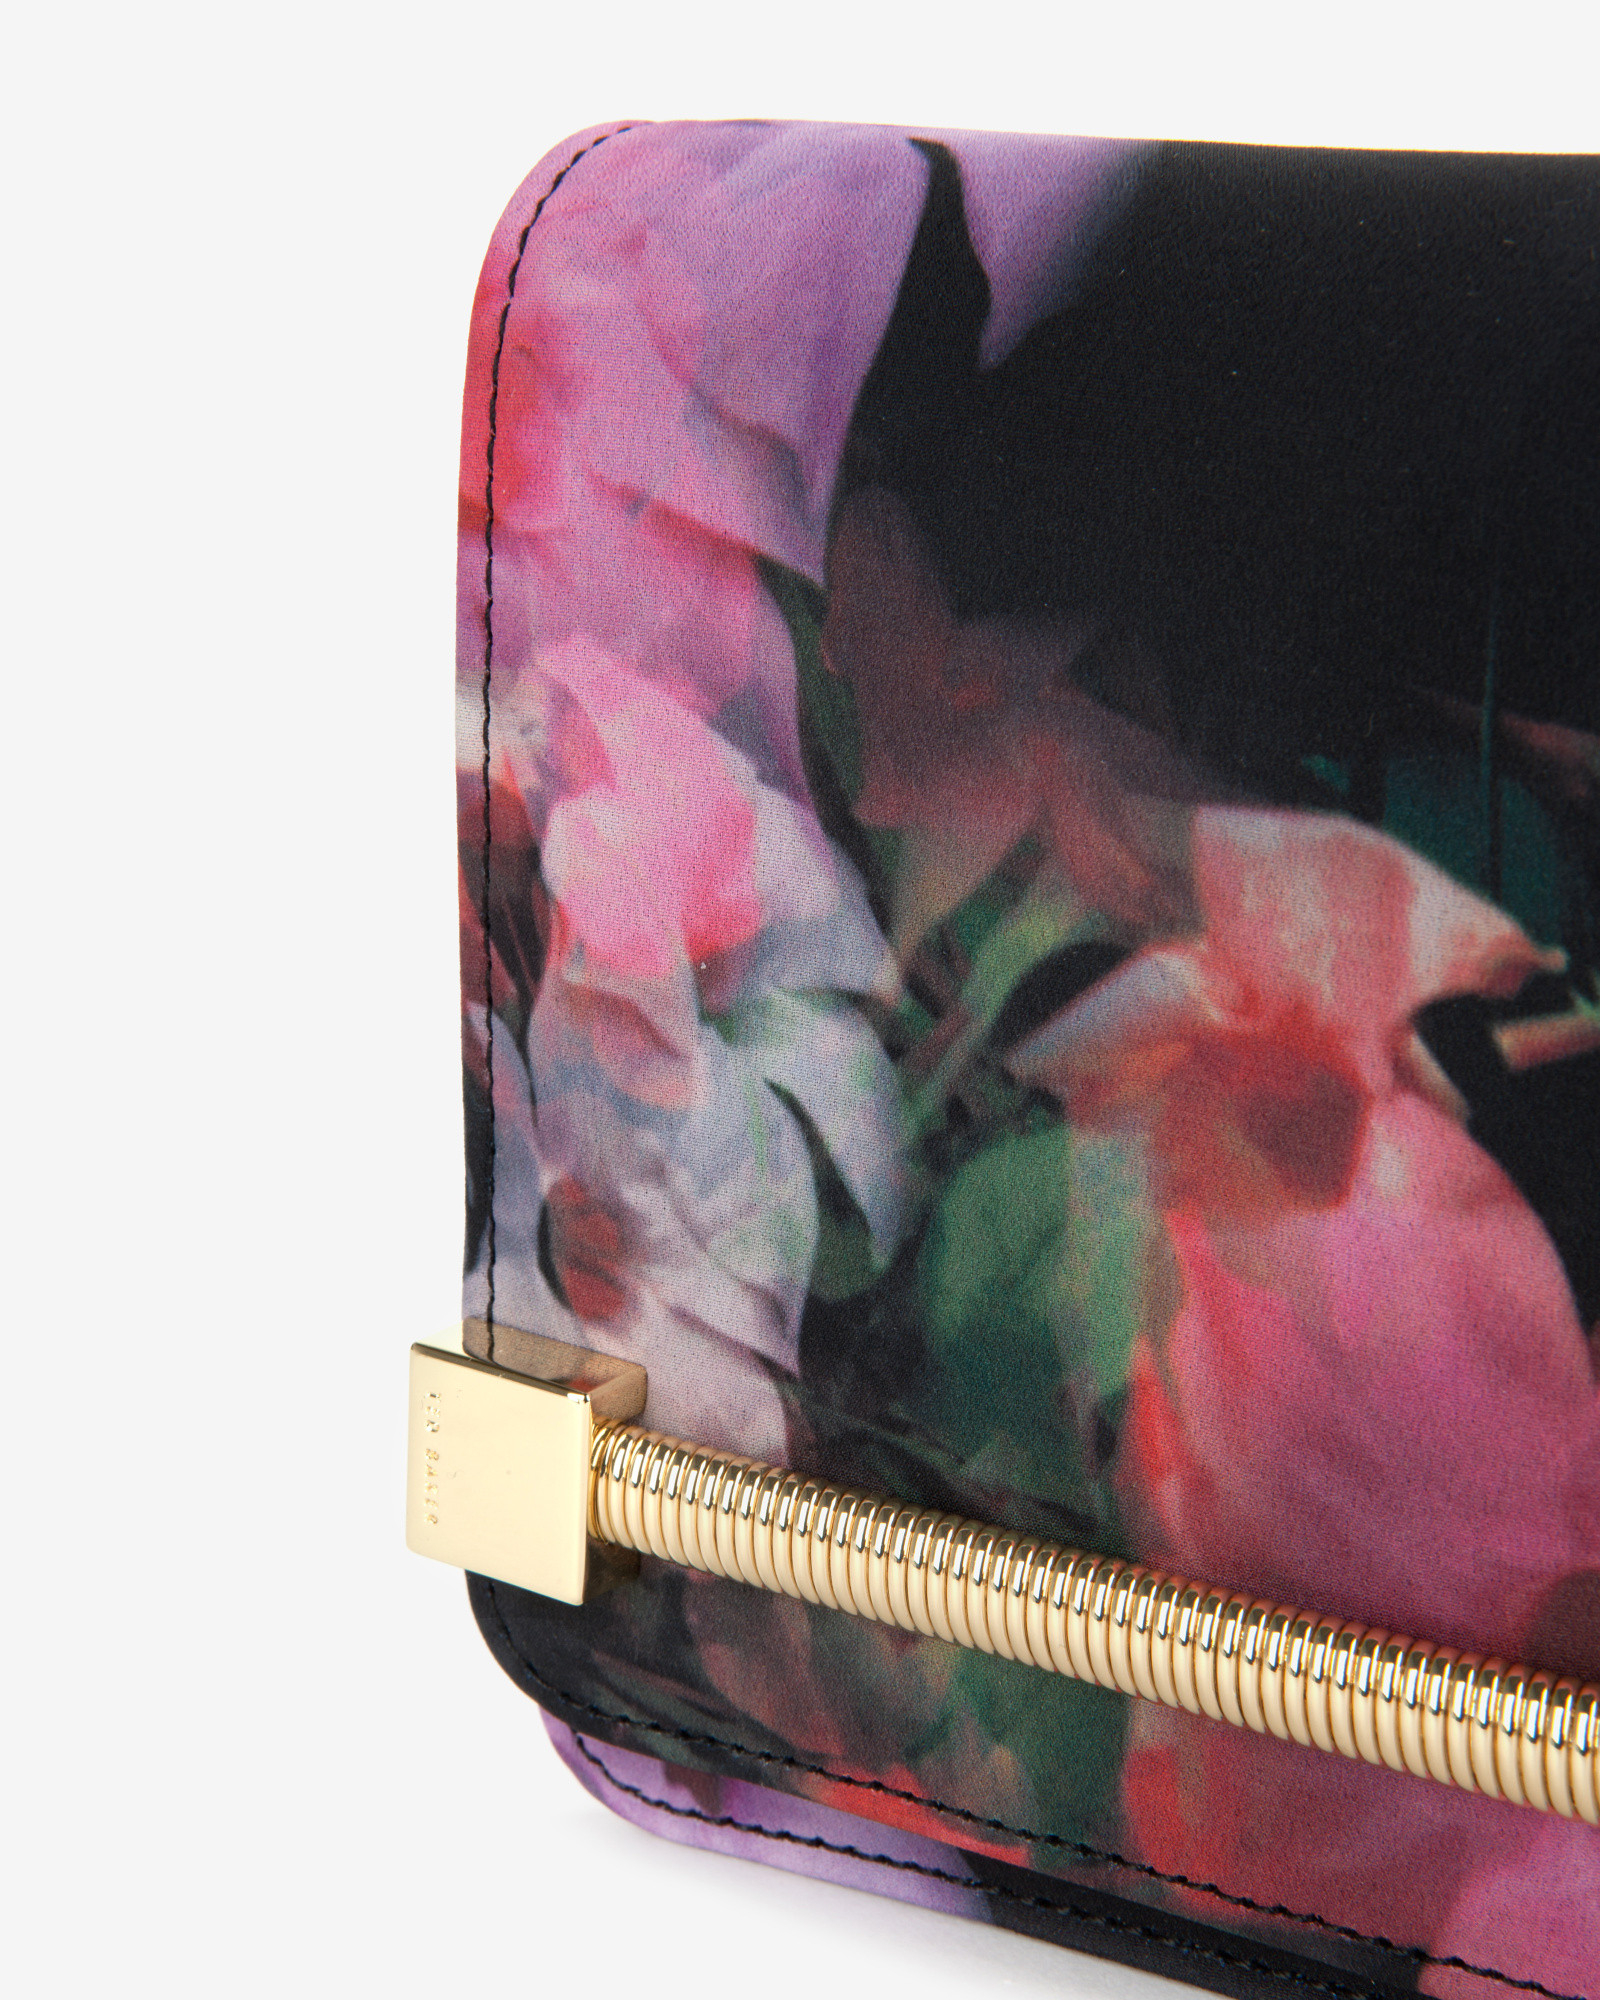 147e8c5a1140 Lyst - Ted Baker Cascading Floral Clutch Bag in Black